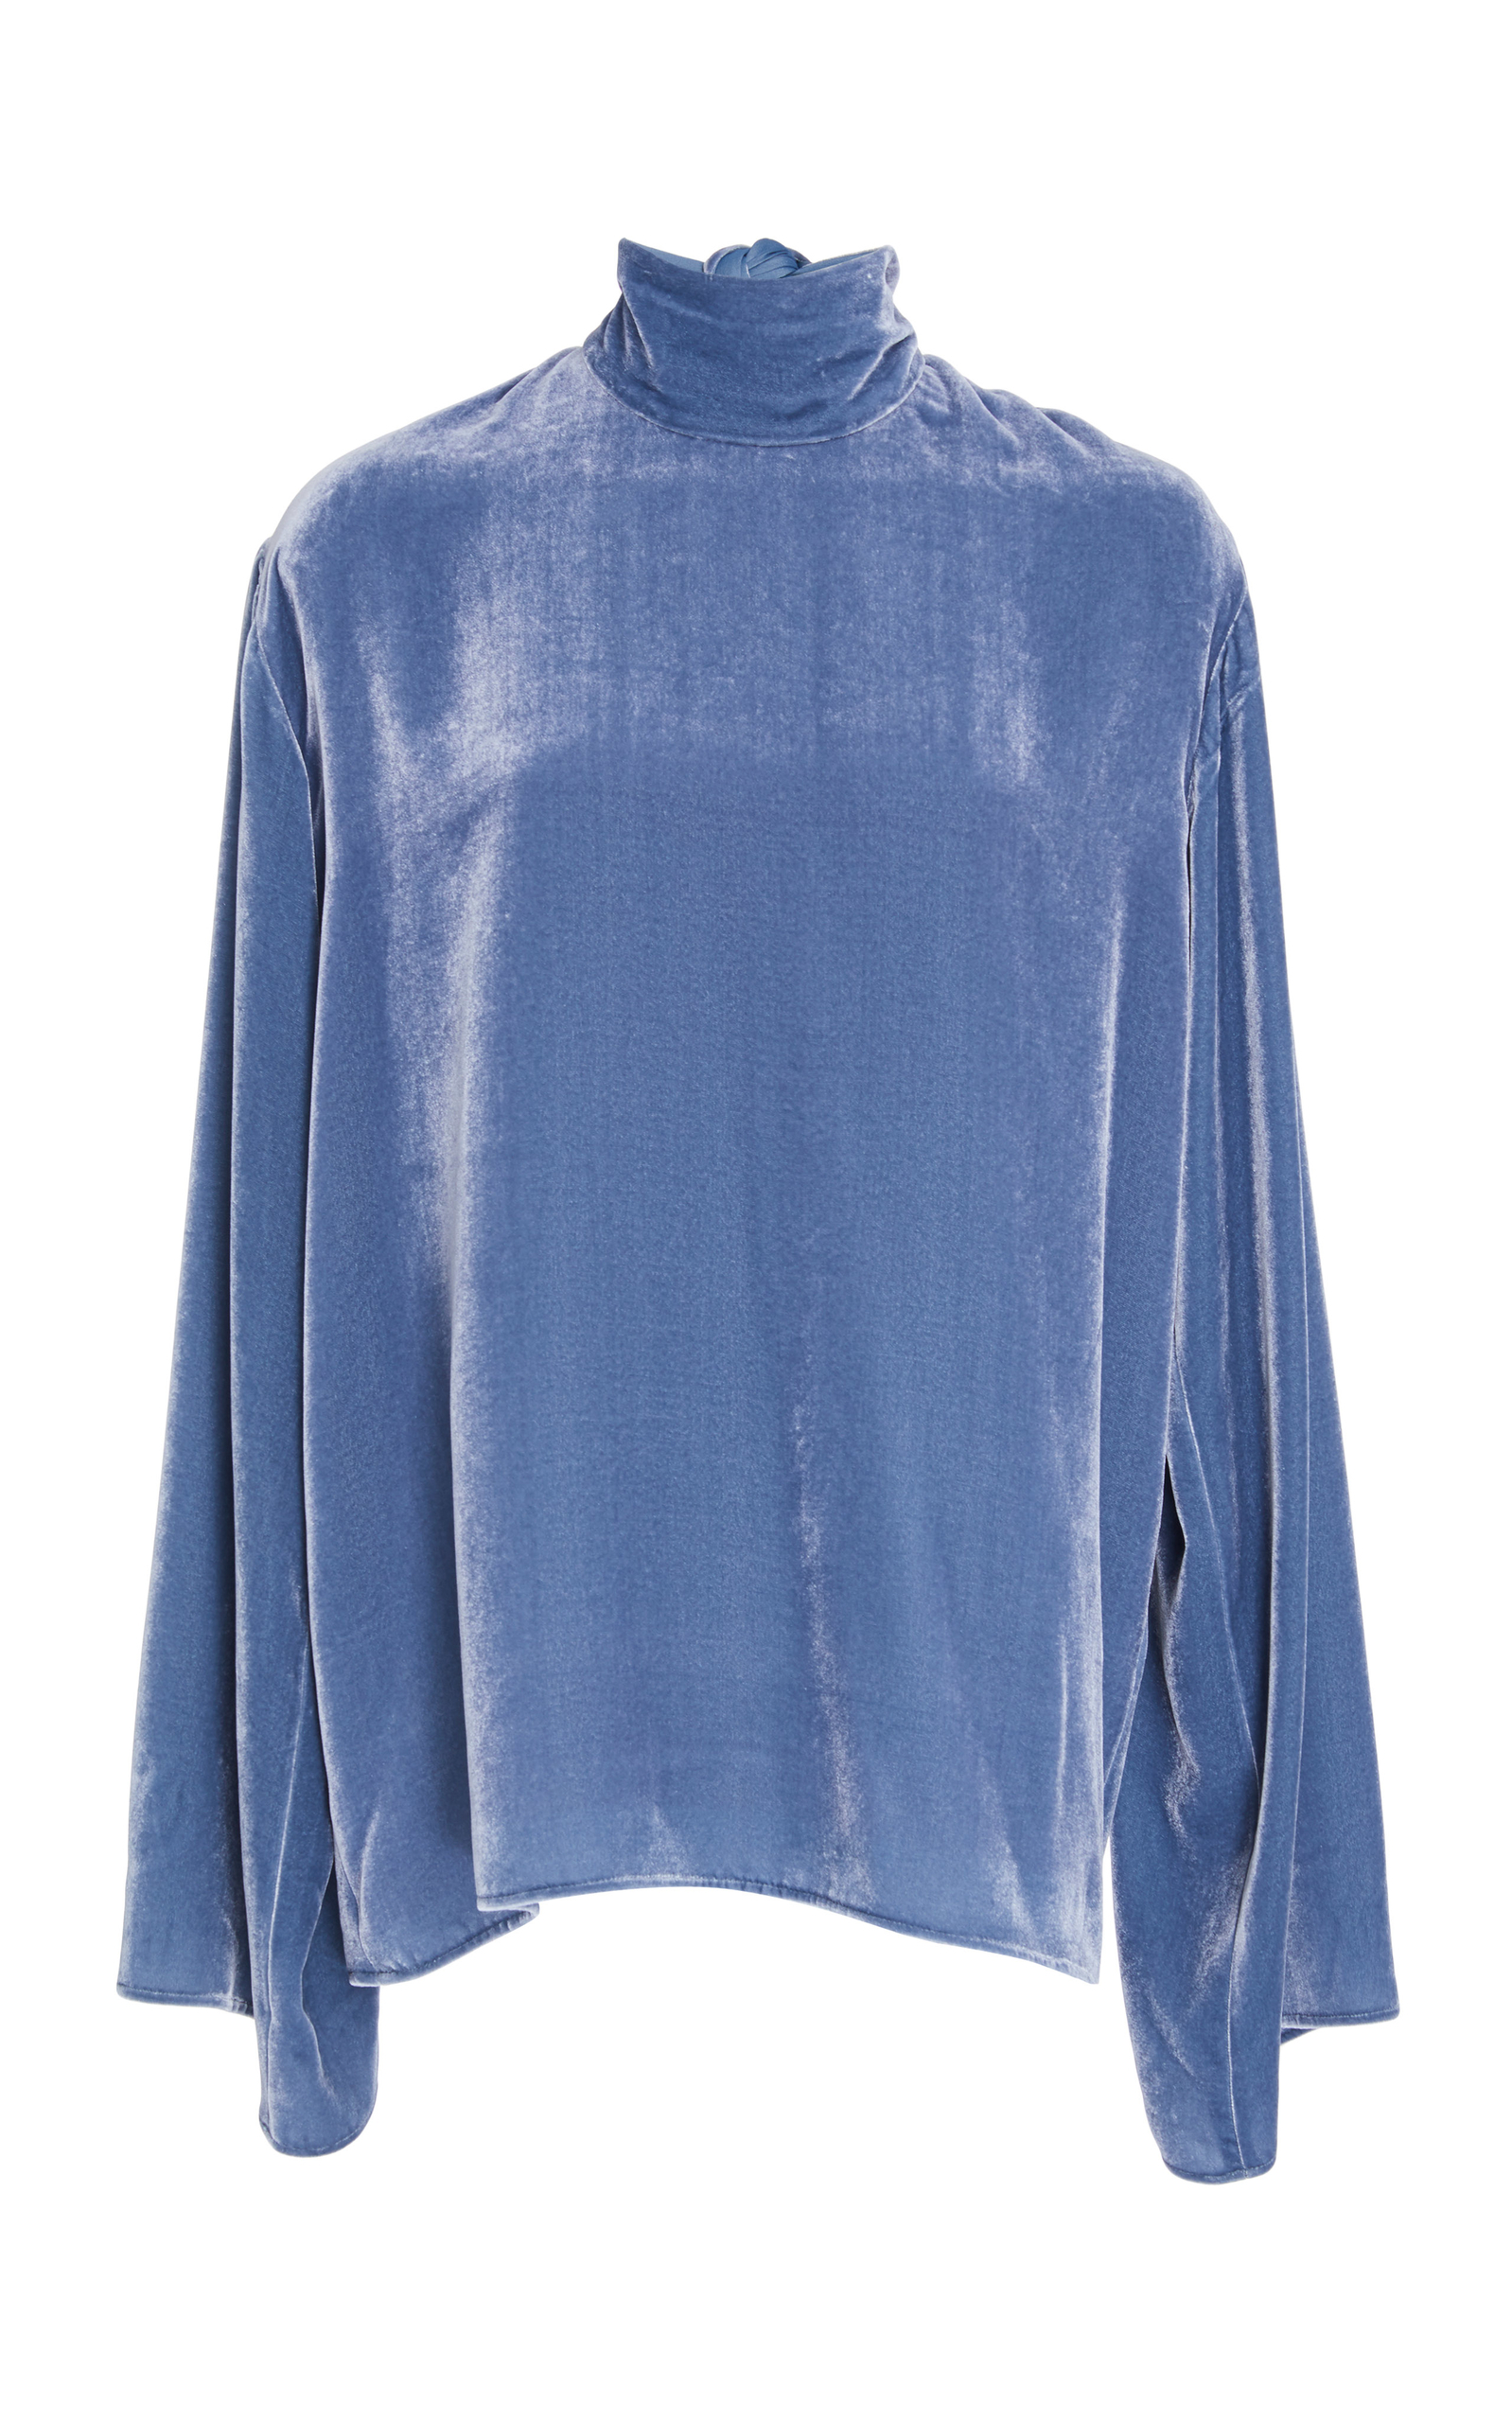 MAREI 1998 Heliconia Top in Blue